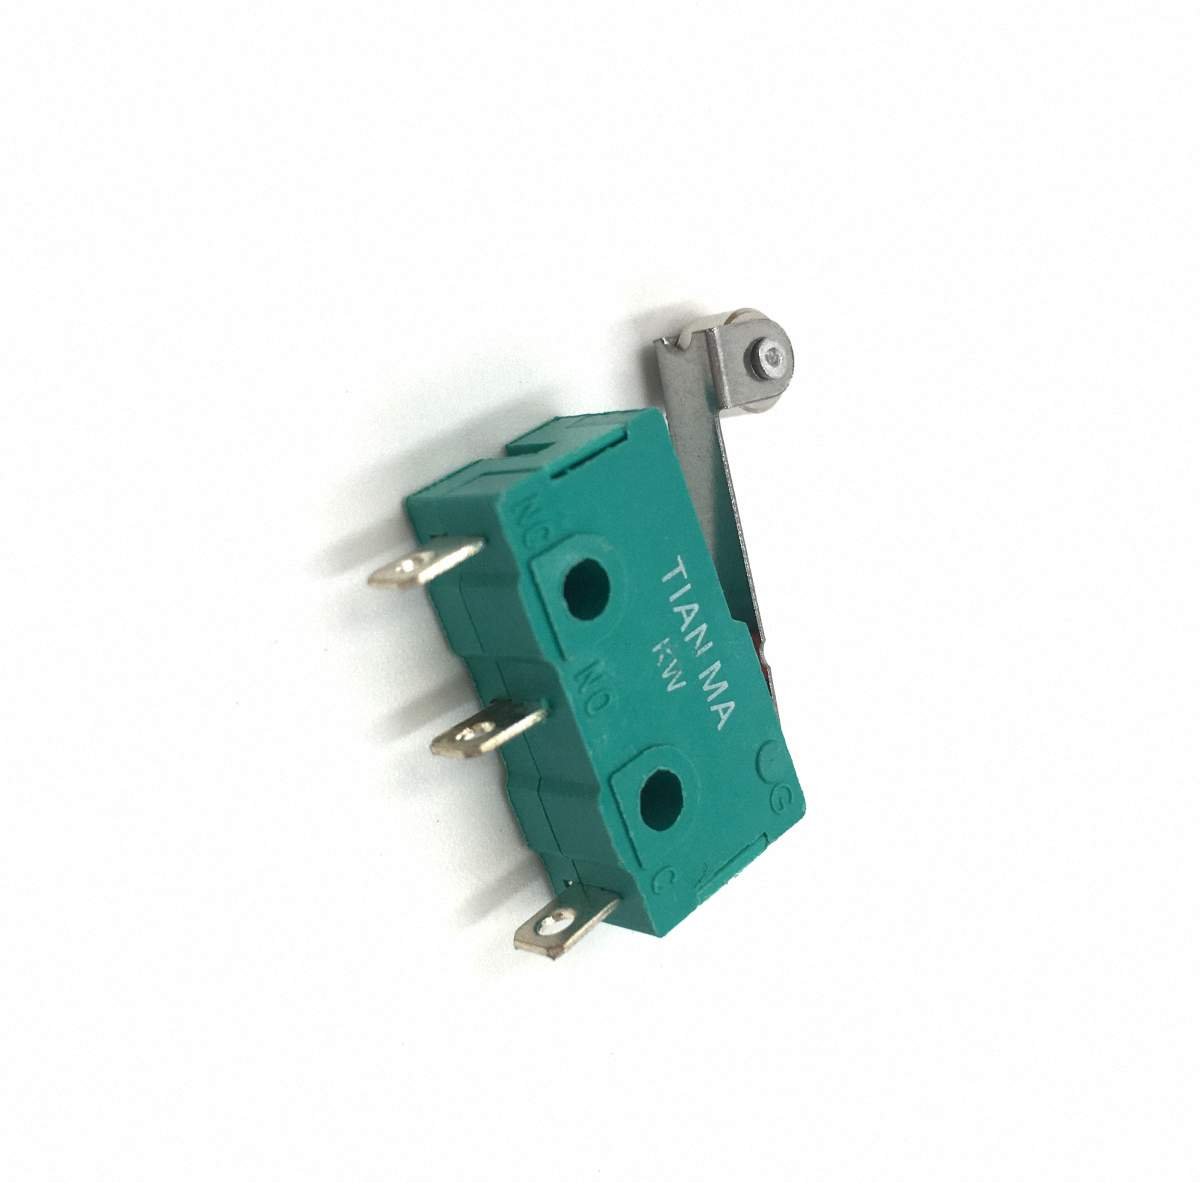 US Stock 5pcs KW4-3Z-3 SPDT NO NC Momentary Hinge Lever Limit Switch Microswitch